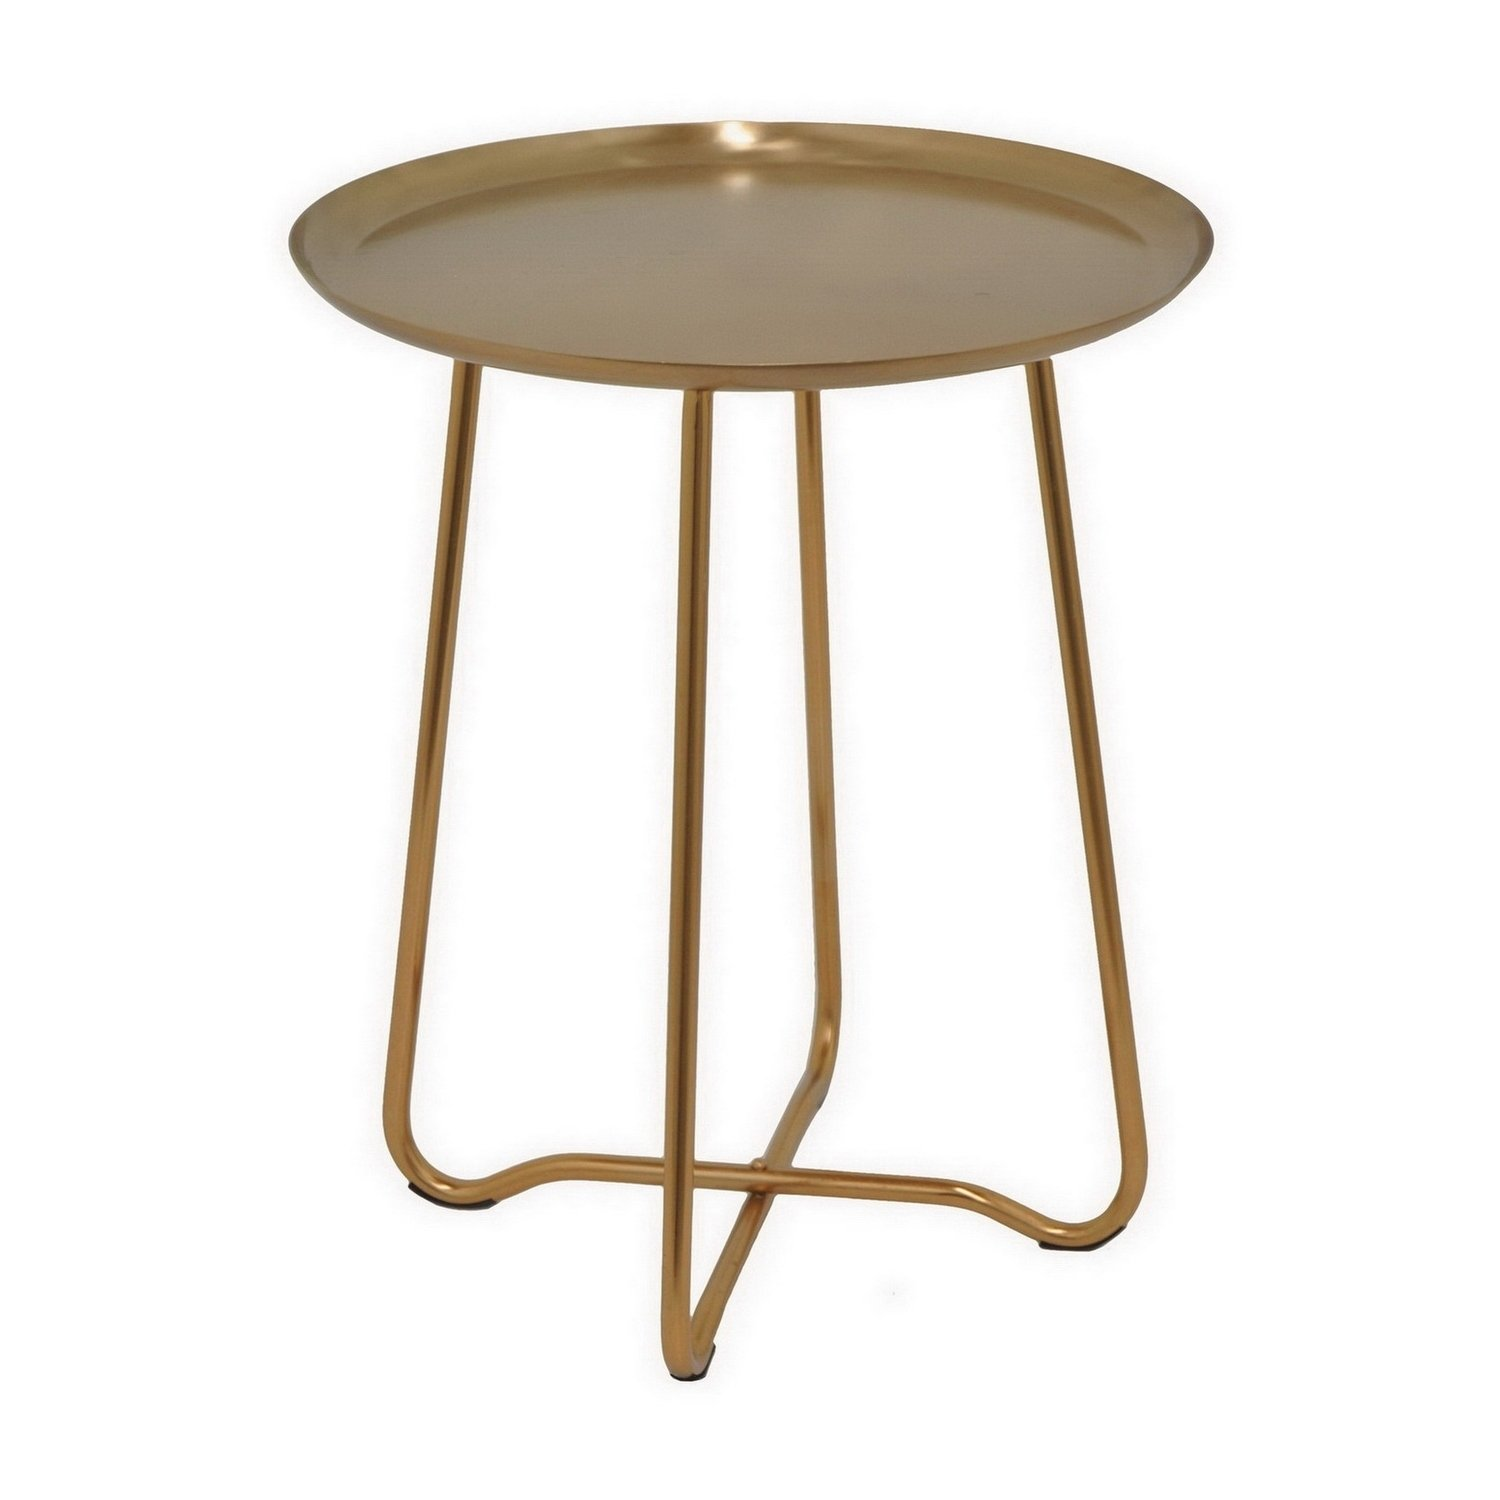 three hands round metal accent table bronze free shipping today percussion stool pub garden furniture vintage coffee grey dining set small black desk acrylic side with shelf